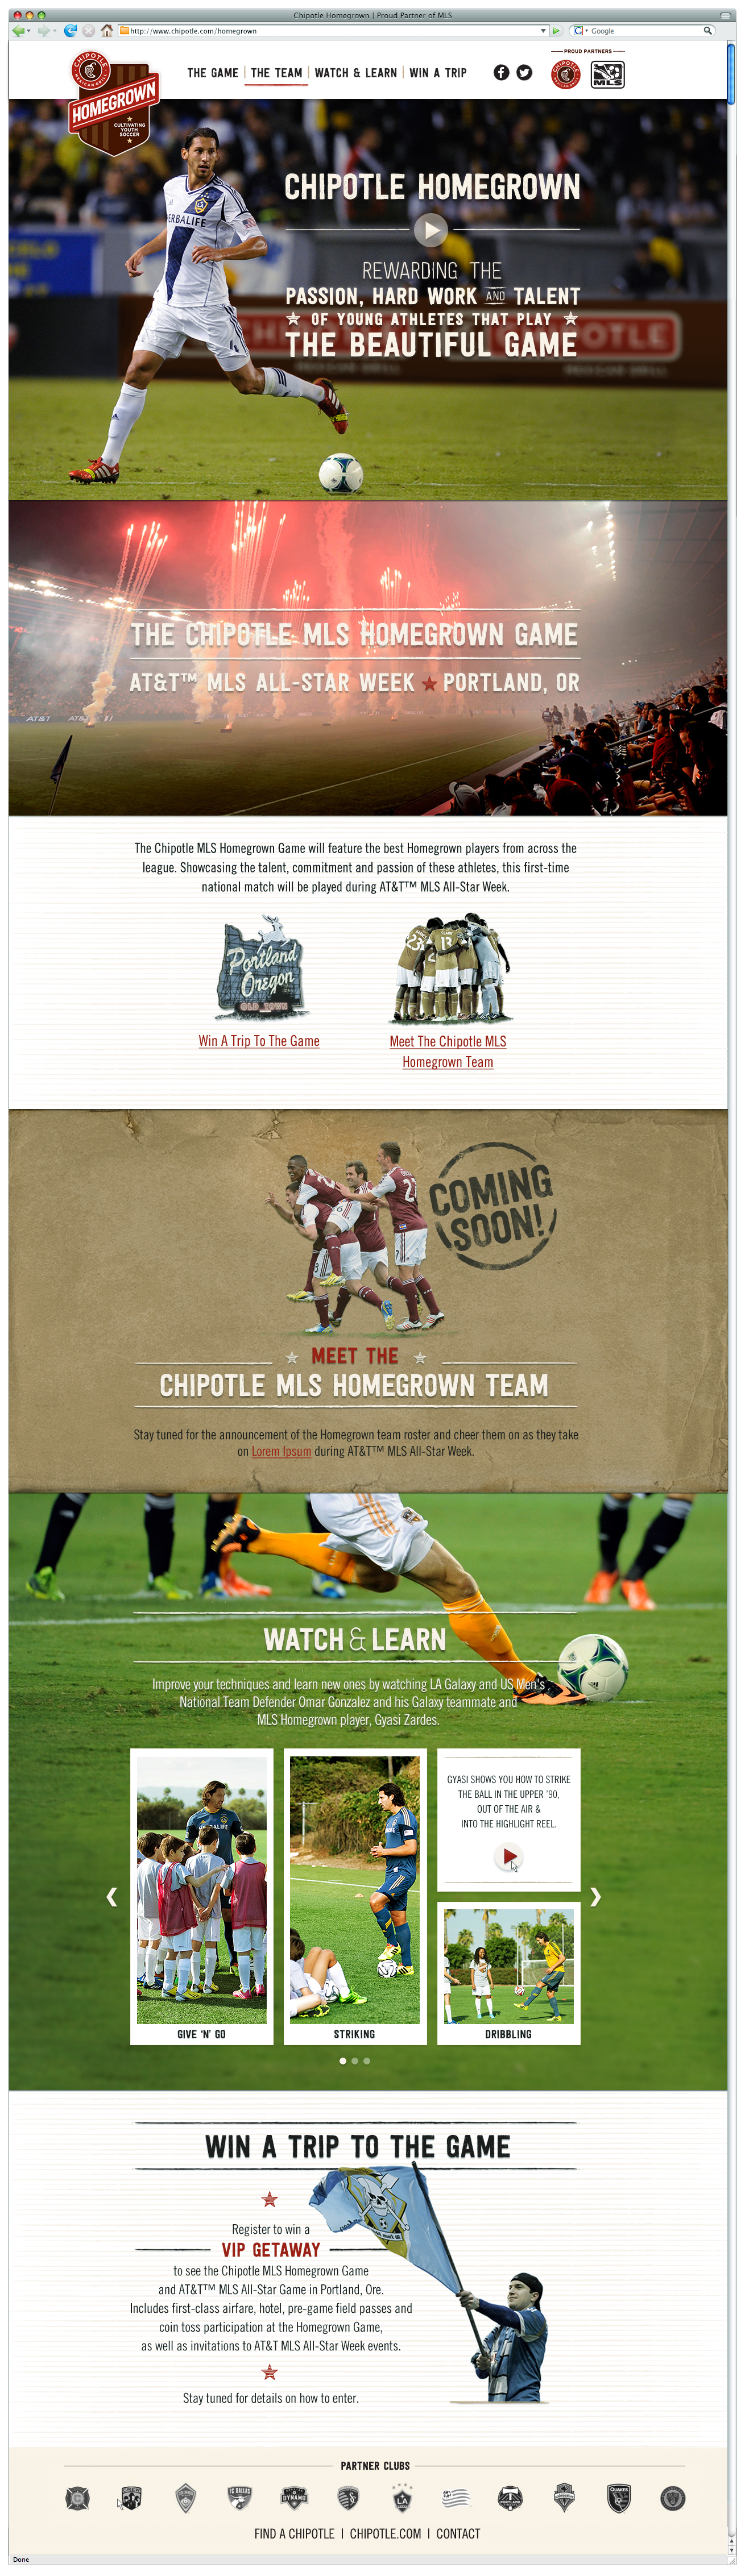 Chipotle MLS Homegrown